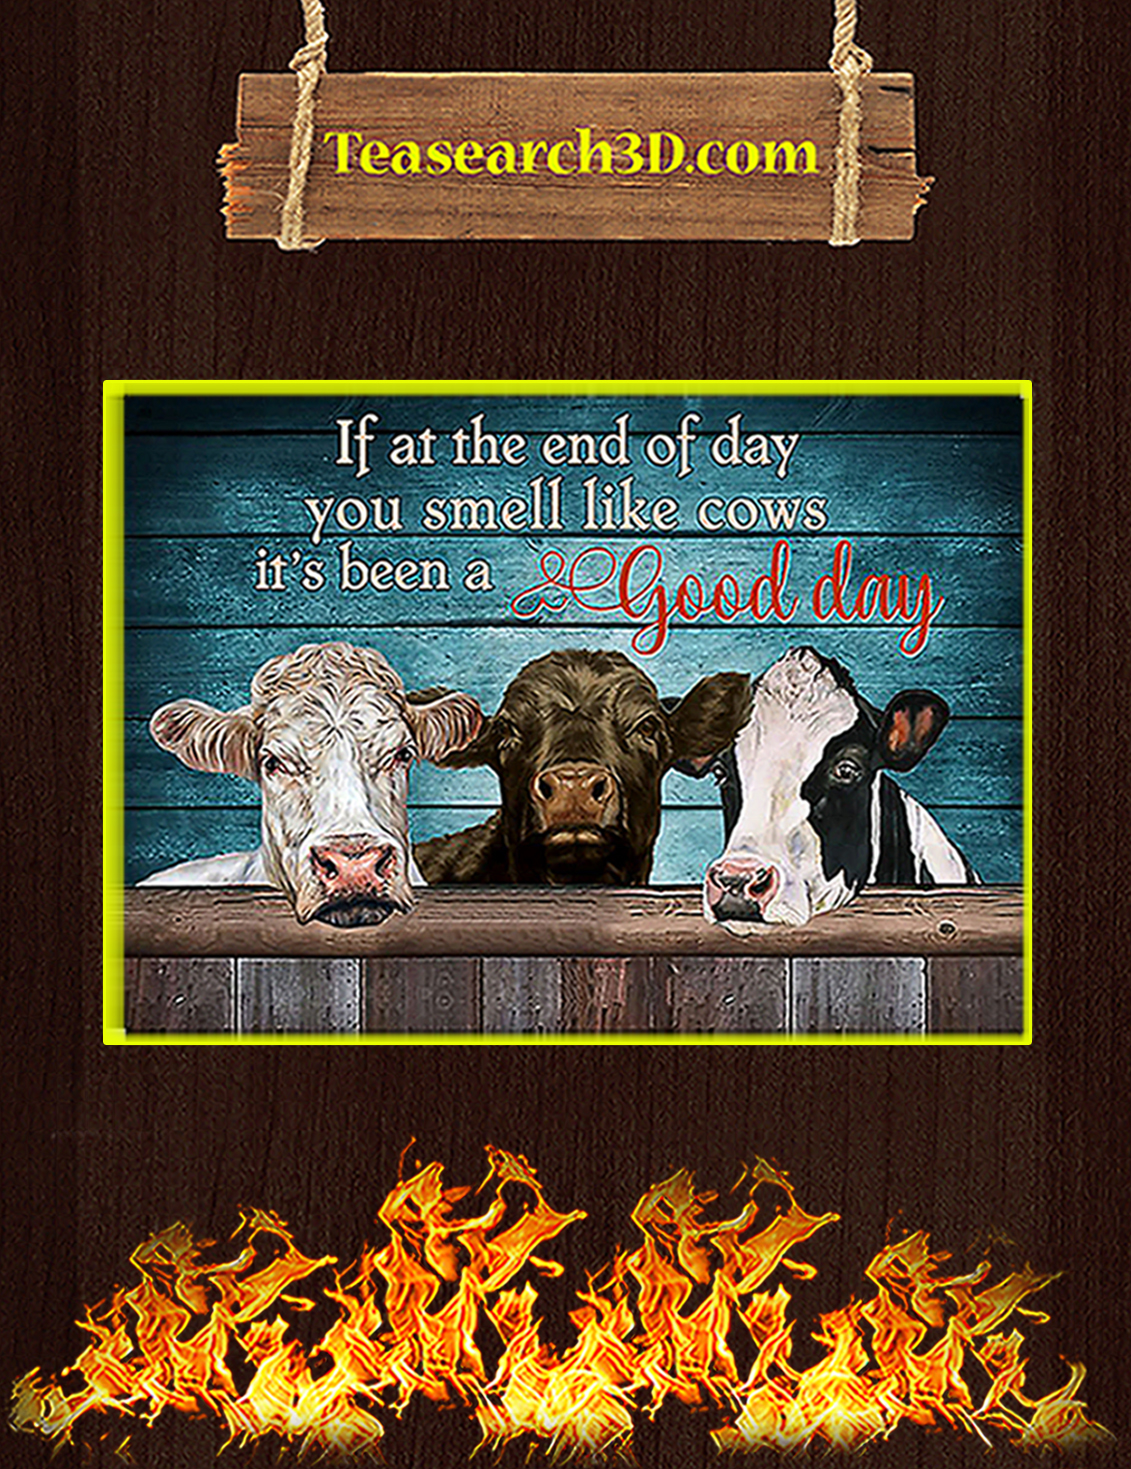 If in the end of day you smell like cows it's been a good day poster A3